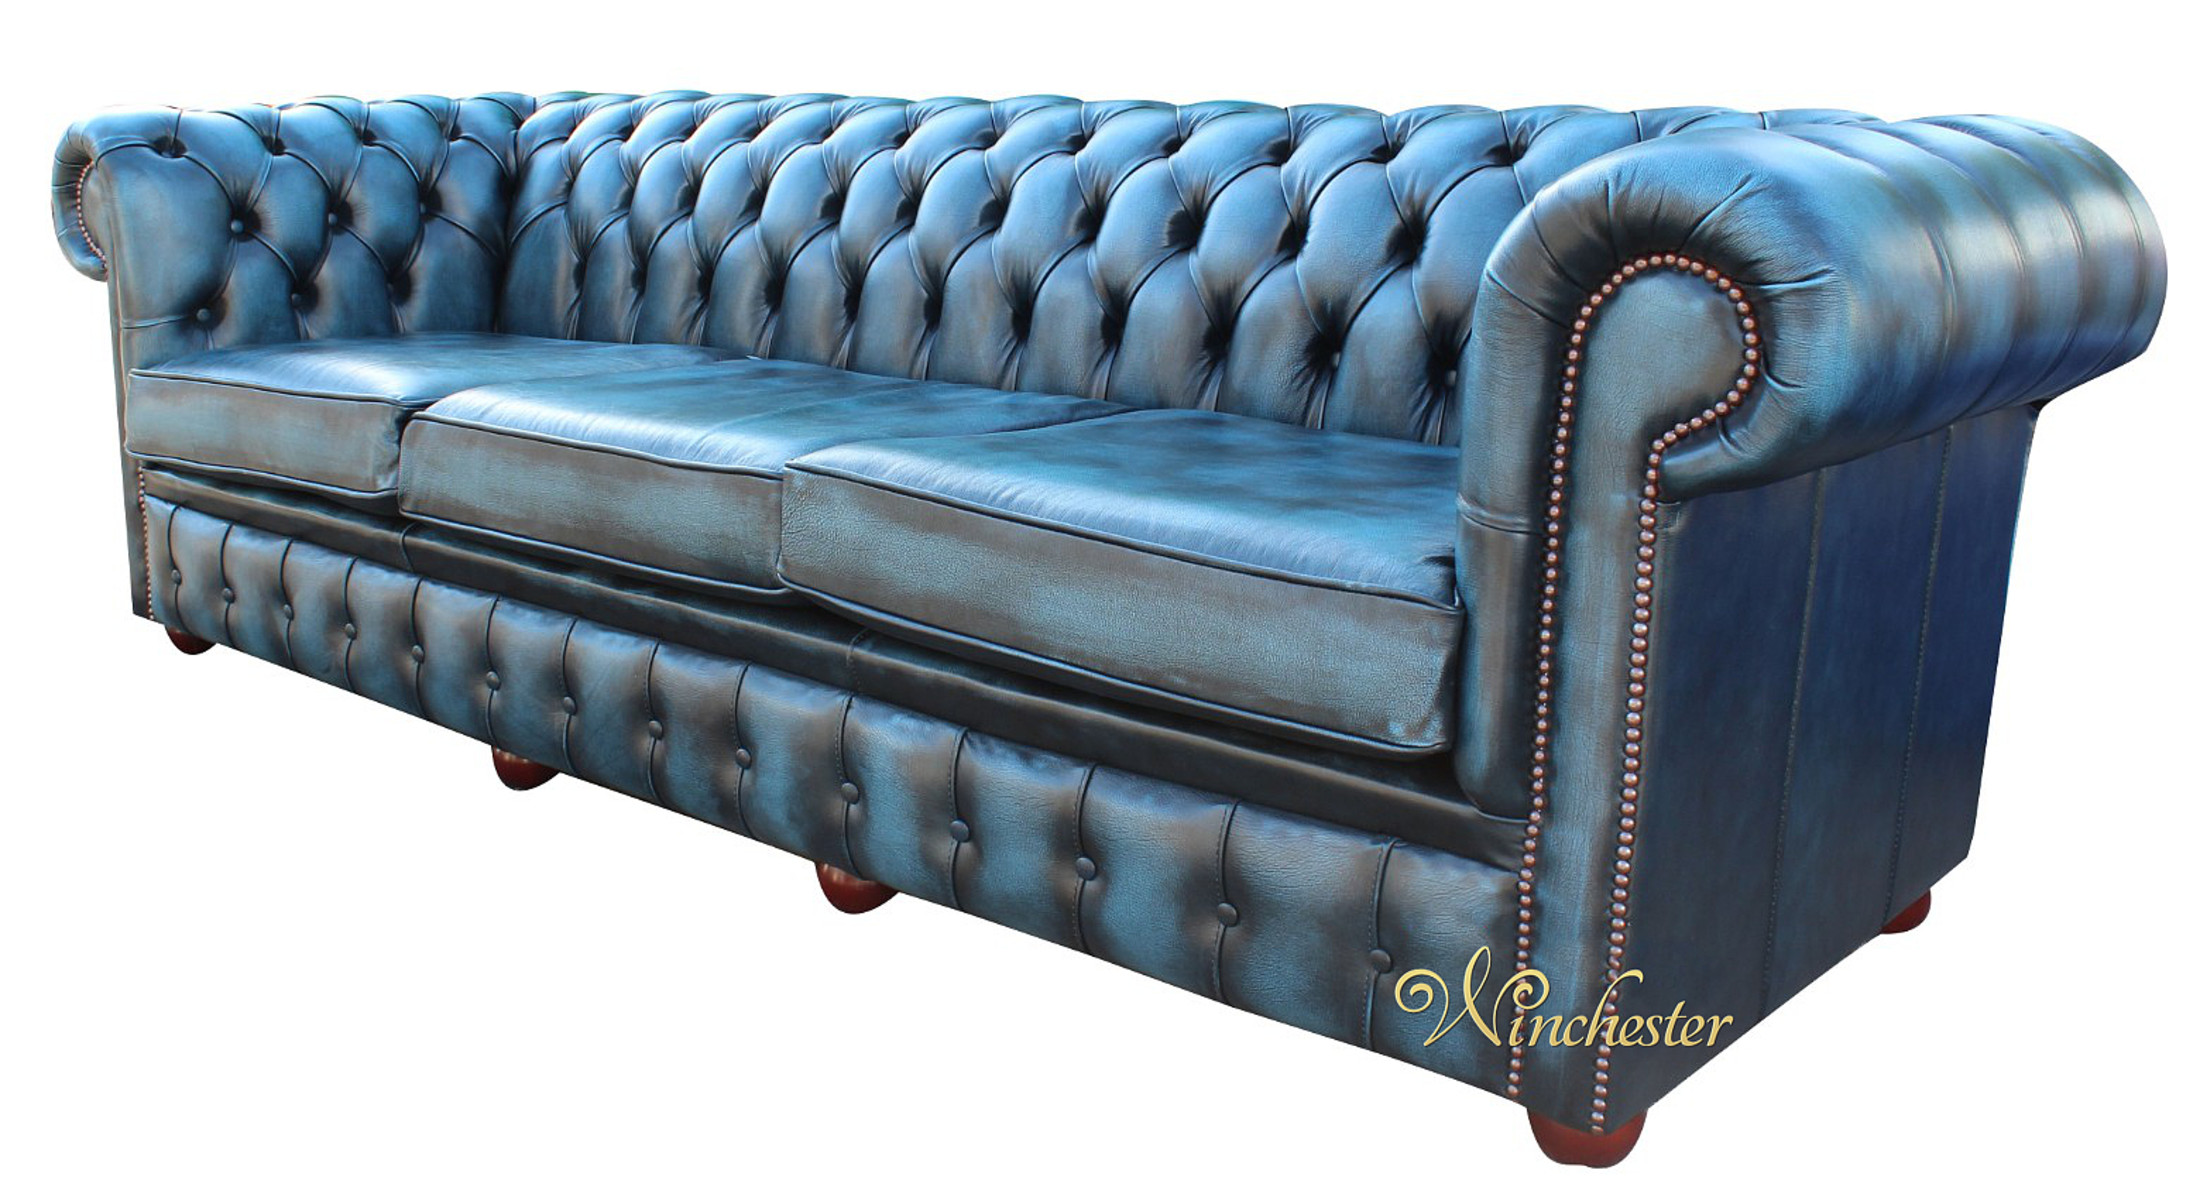 Chesterfield Sofa Navy Blue Leather Chesterfield Sofa Chesterfield 4 Seater